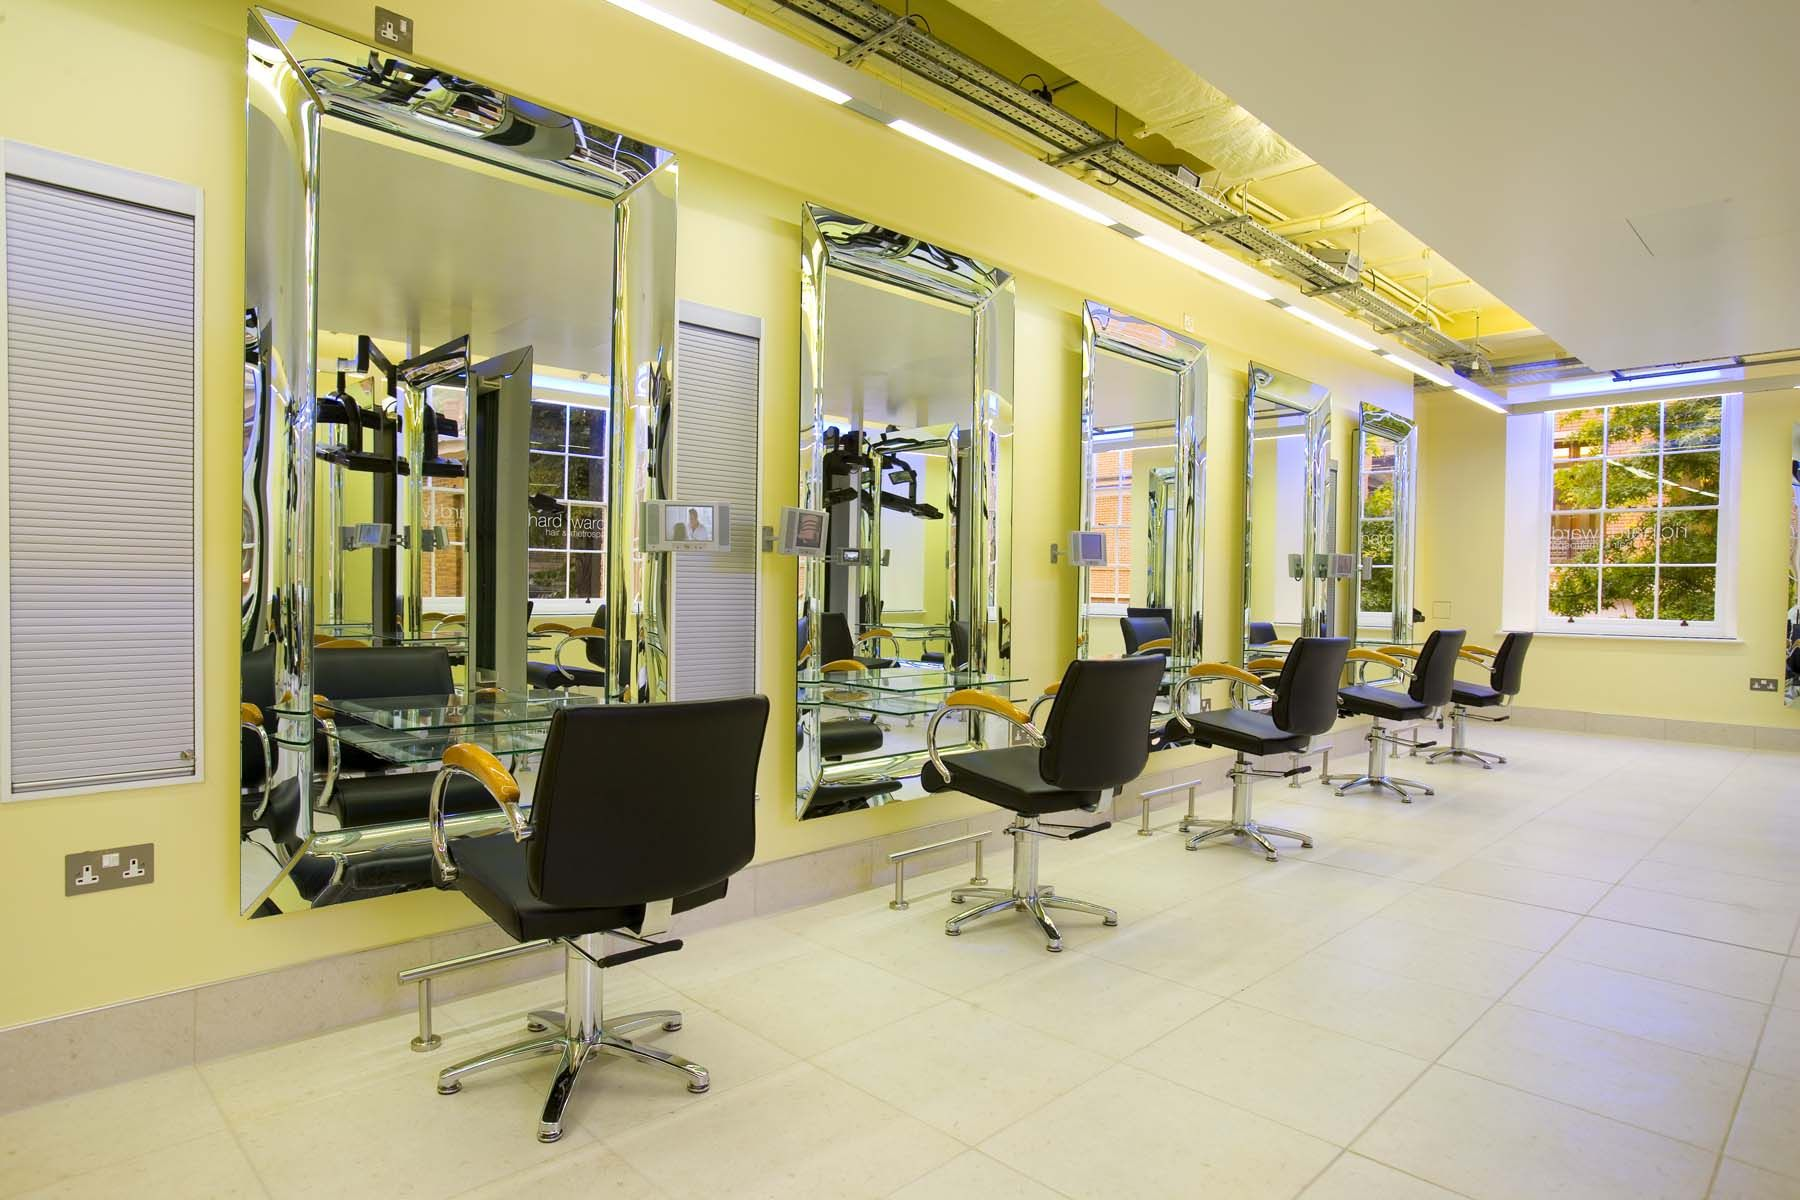 hairdresser resume%0A Caadre mirrors Fiam  designed by Philippe Starck  in salon hair stylist  Richard Ward in